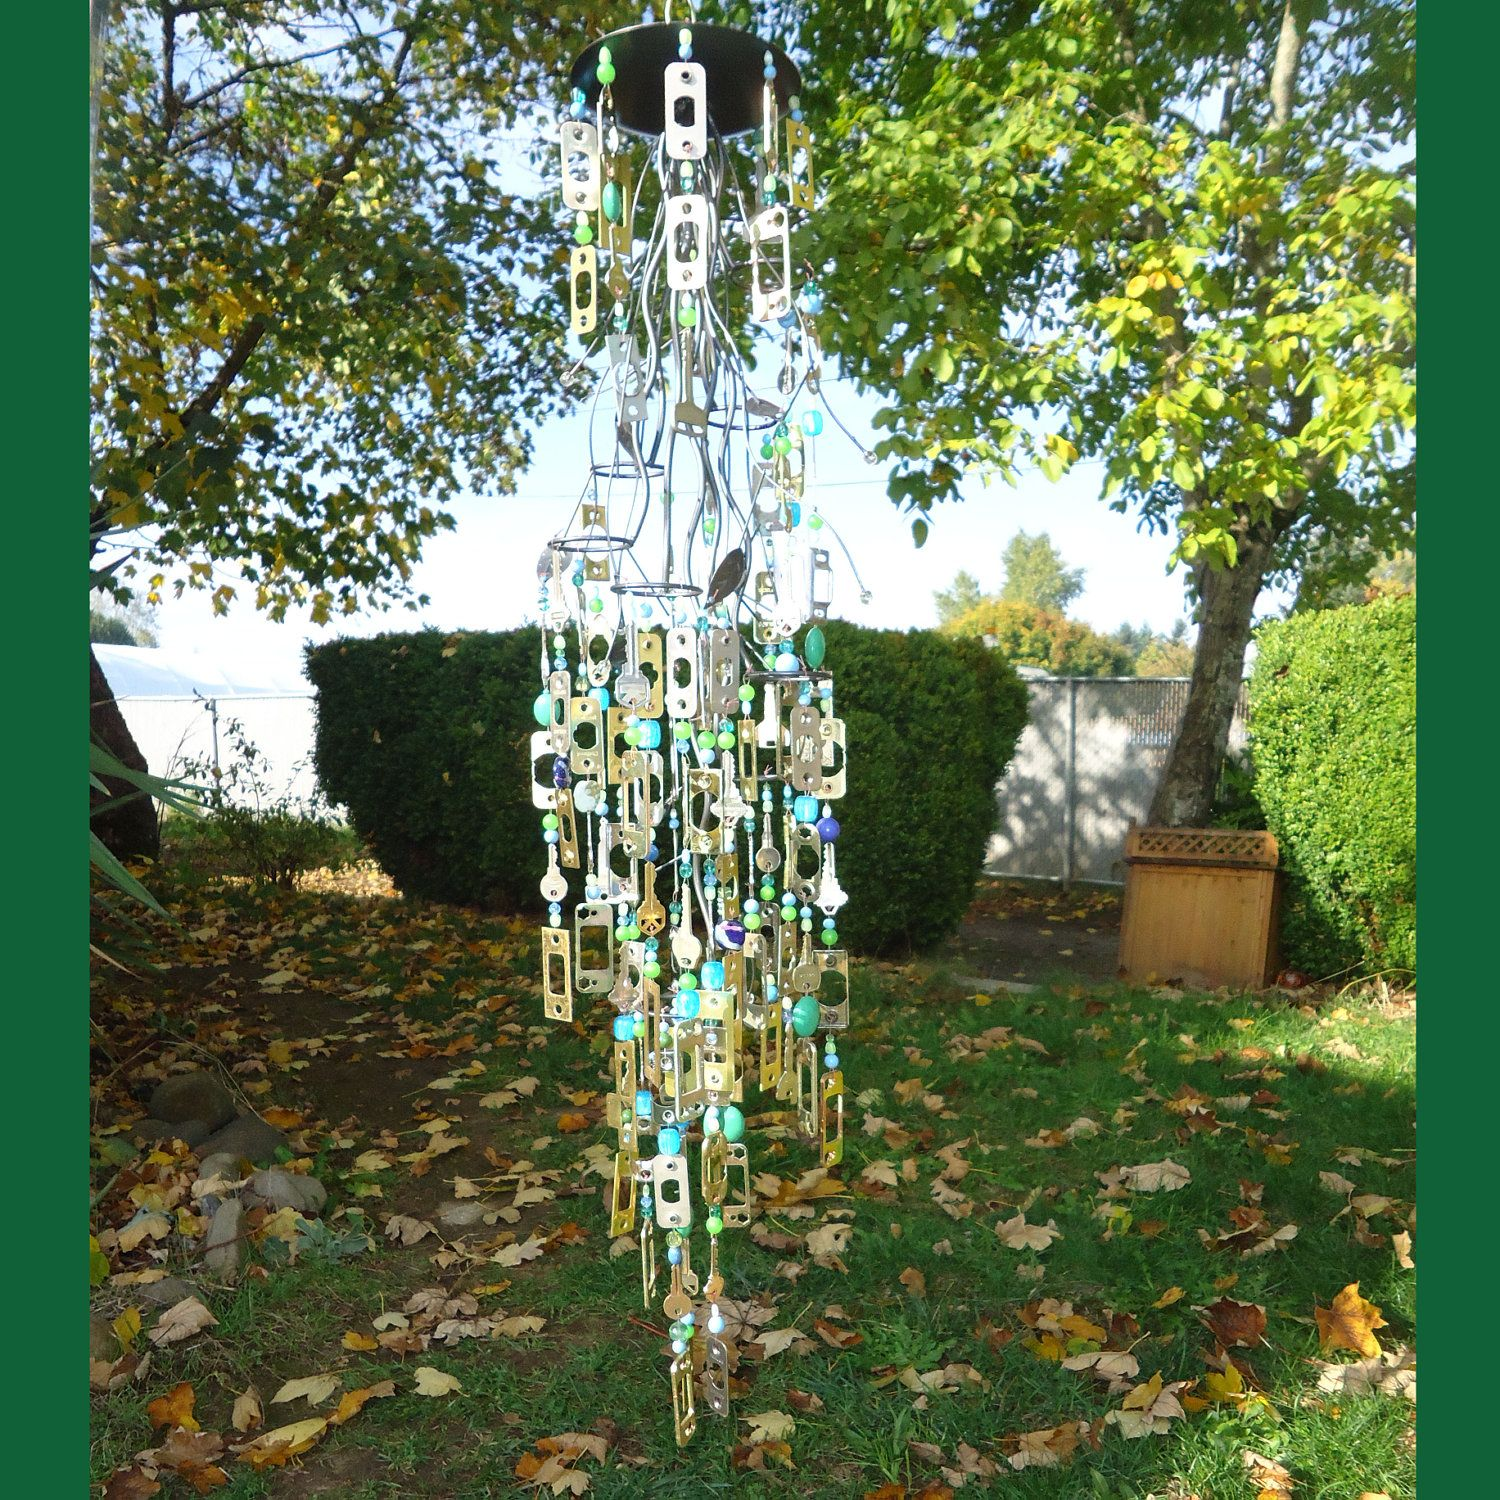 Amazing garden art from recycled materials ideas plan 3d for Wind chimes from recycled materials